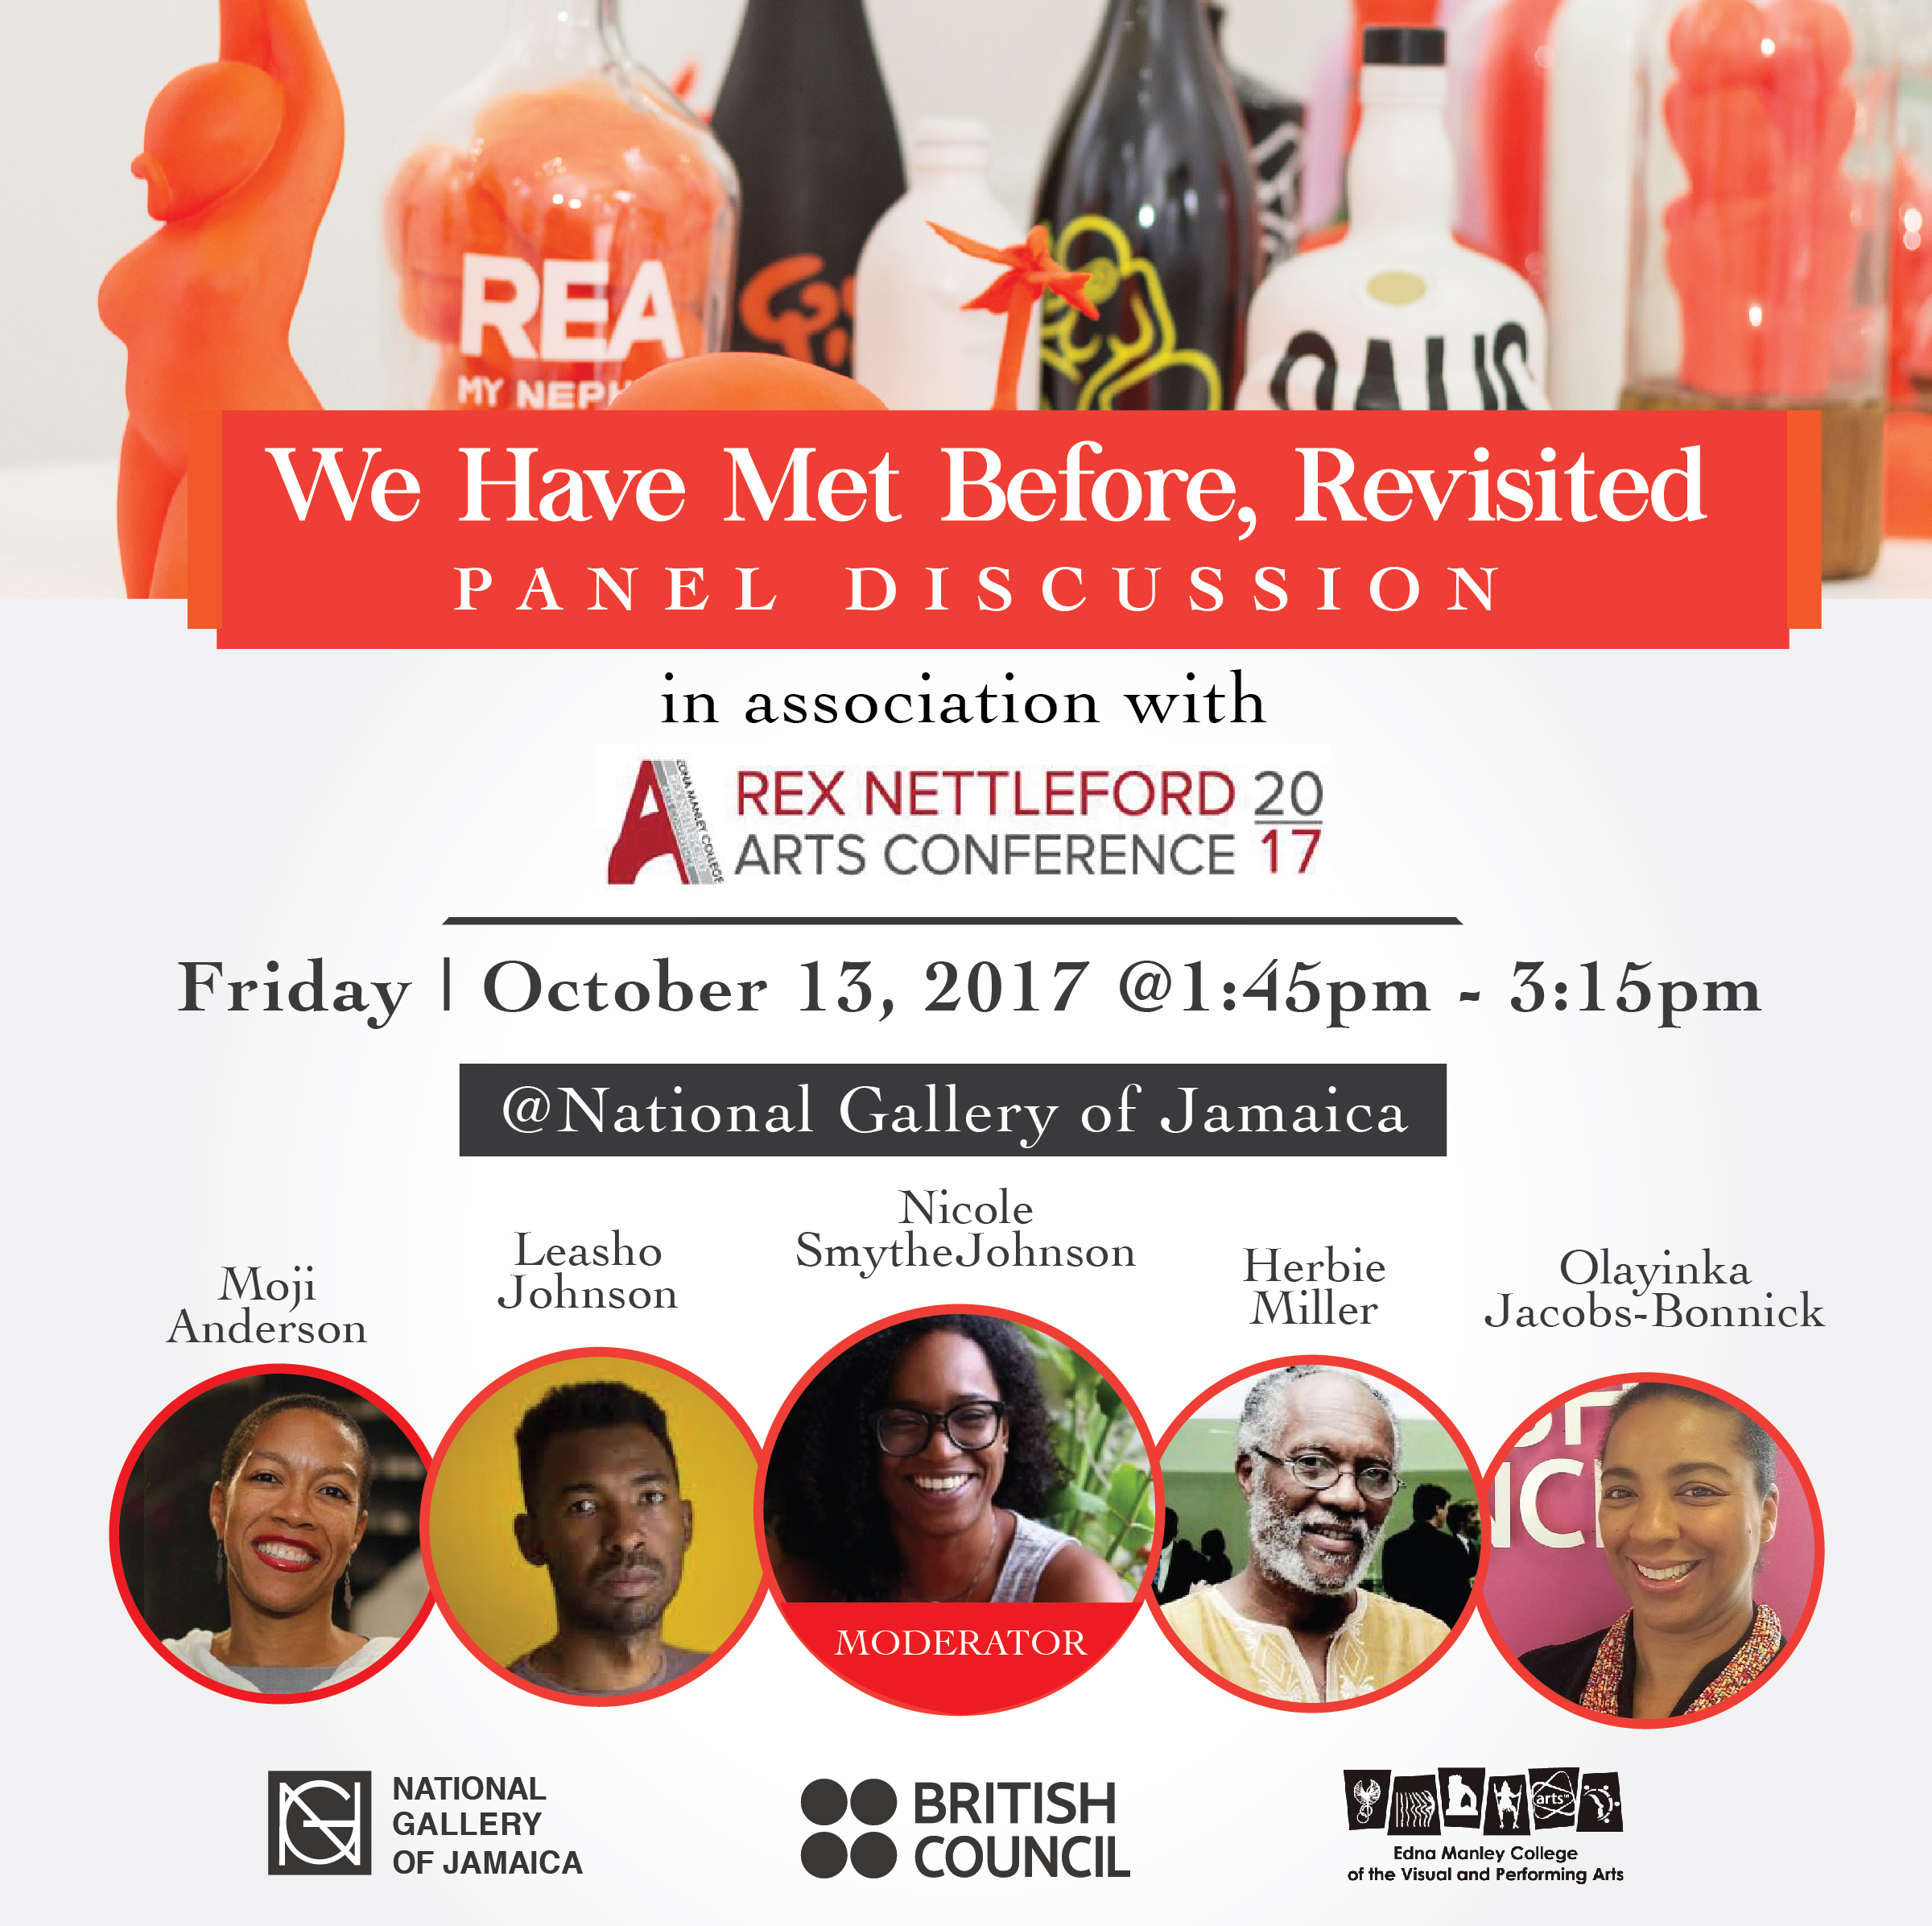 We have met before national gallery of jamaica blog the national gallery of jamaica is pleased to present the panel discussion we have met before revisited which will take place at the national gallery on malvernweather Images